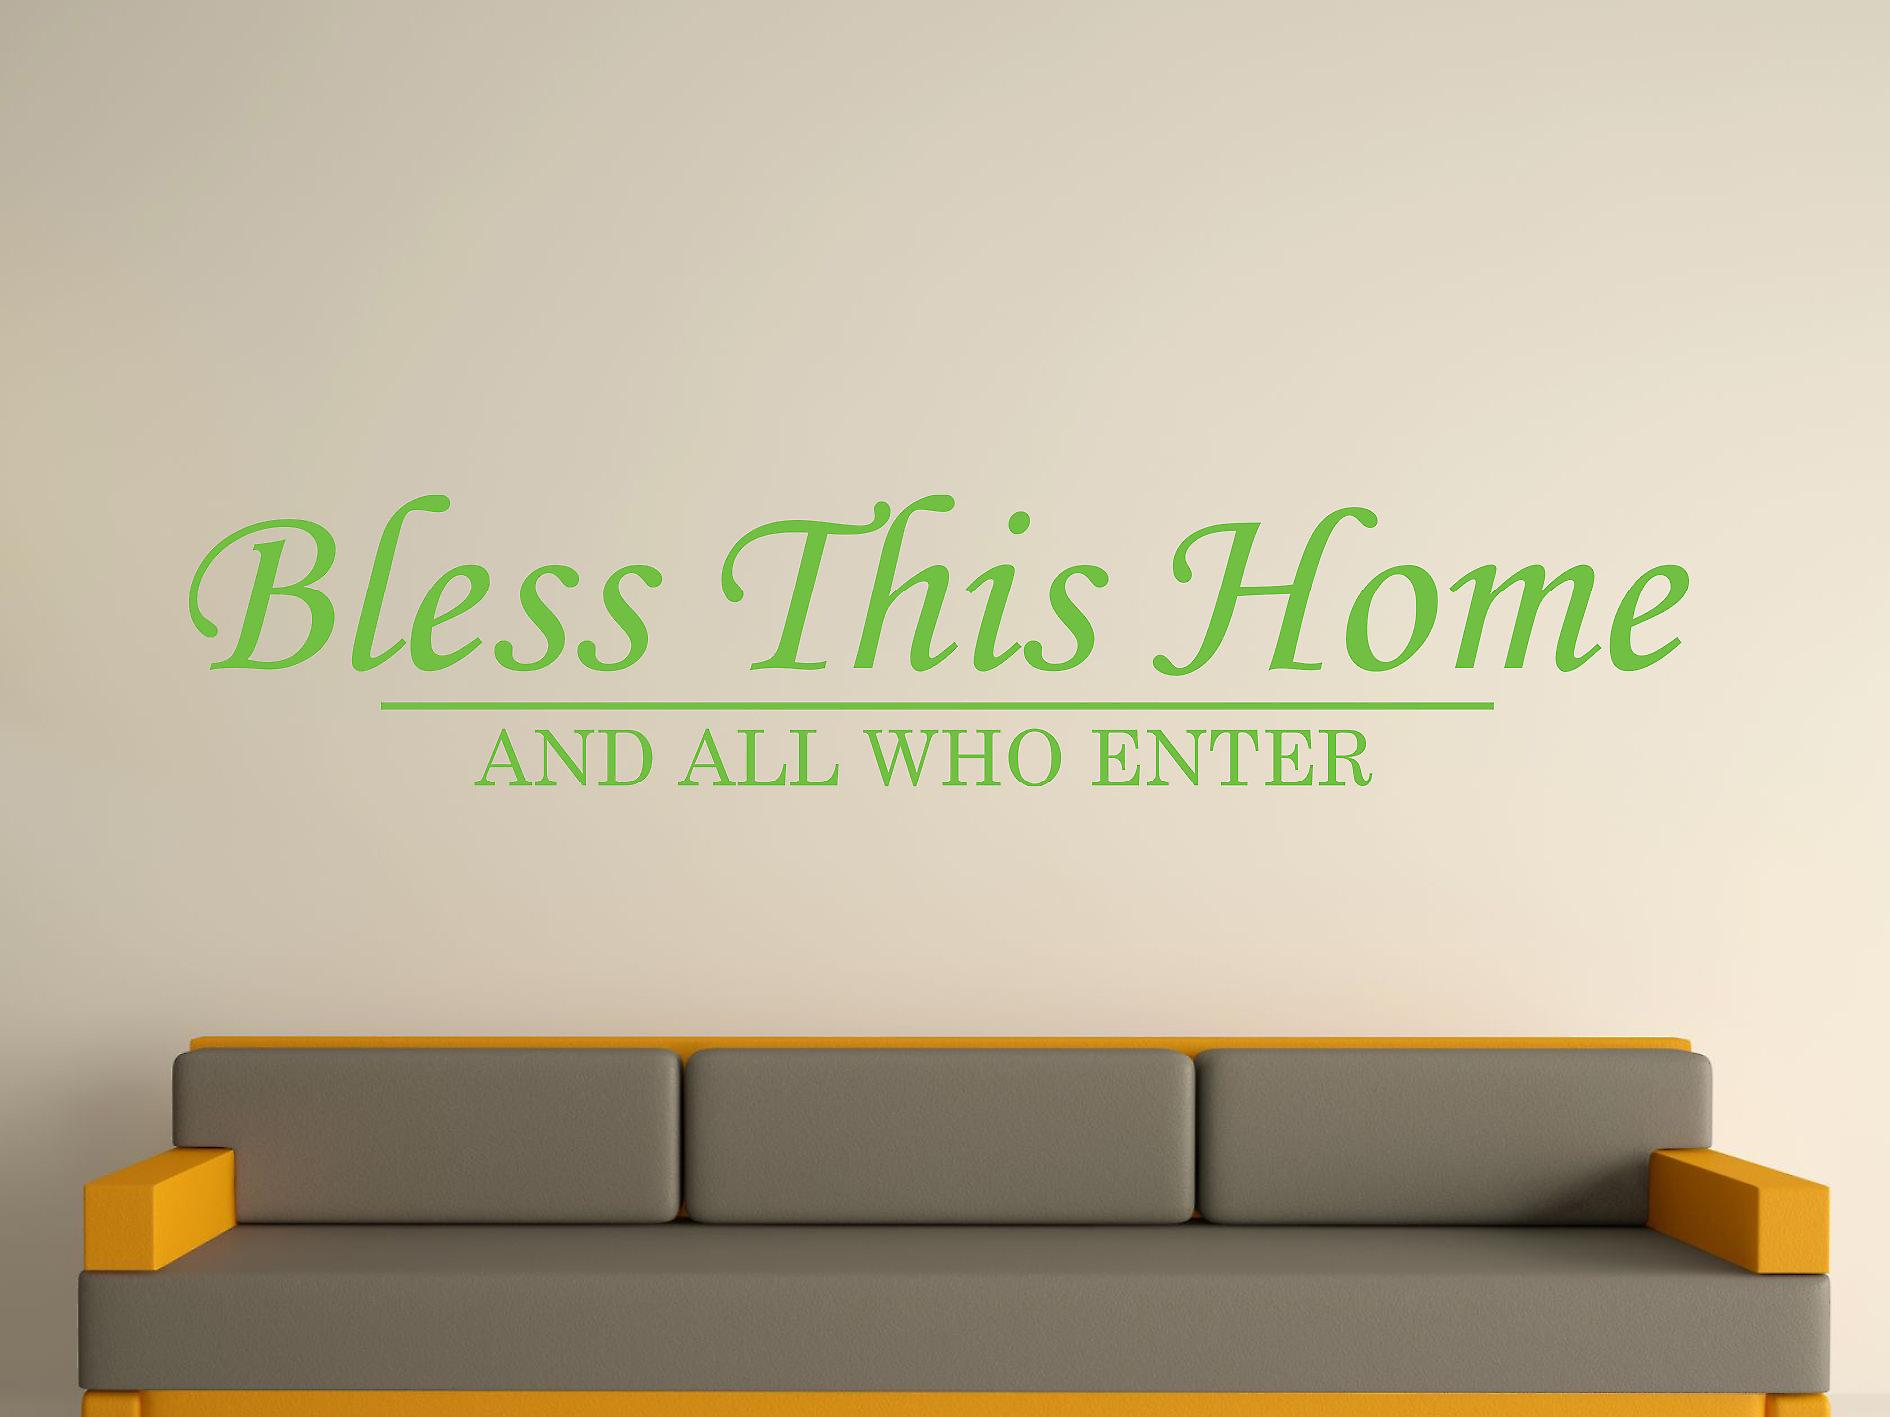 Bless This Home Wall Art Sticker - Apple Green